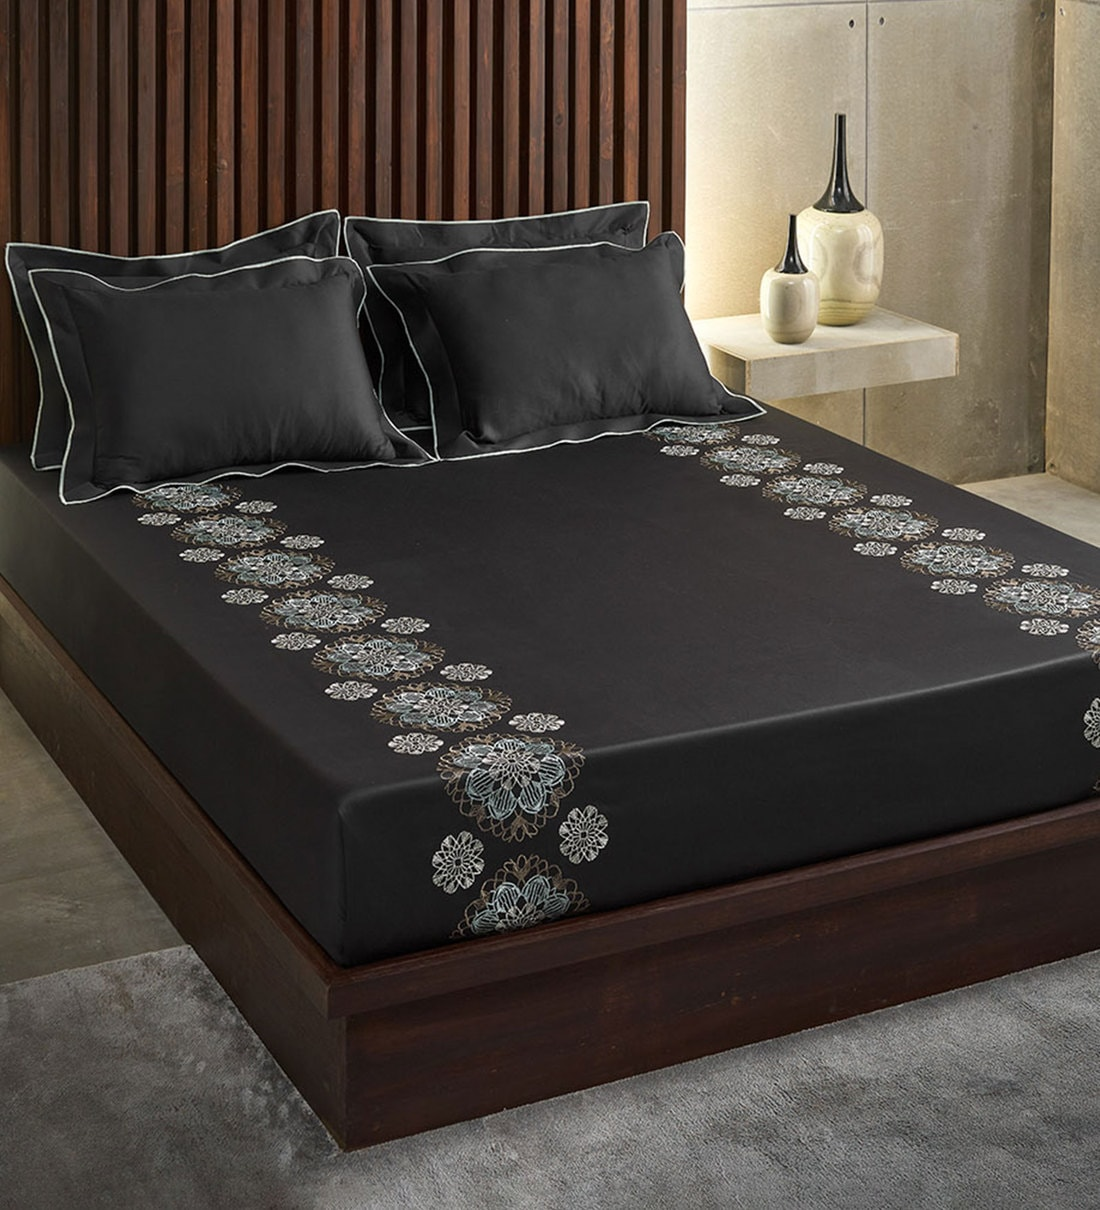 Buy Eternity Ebony 100 Cotton 210tc Embroidered Double Bedsheet With 2 Pillow Covers Online Abstract Double Bed Sheets Bed Sheets Furnishings Pepperfry Product